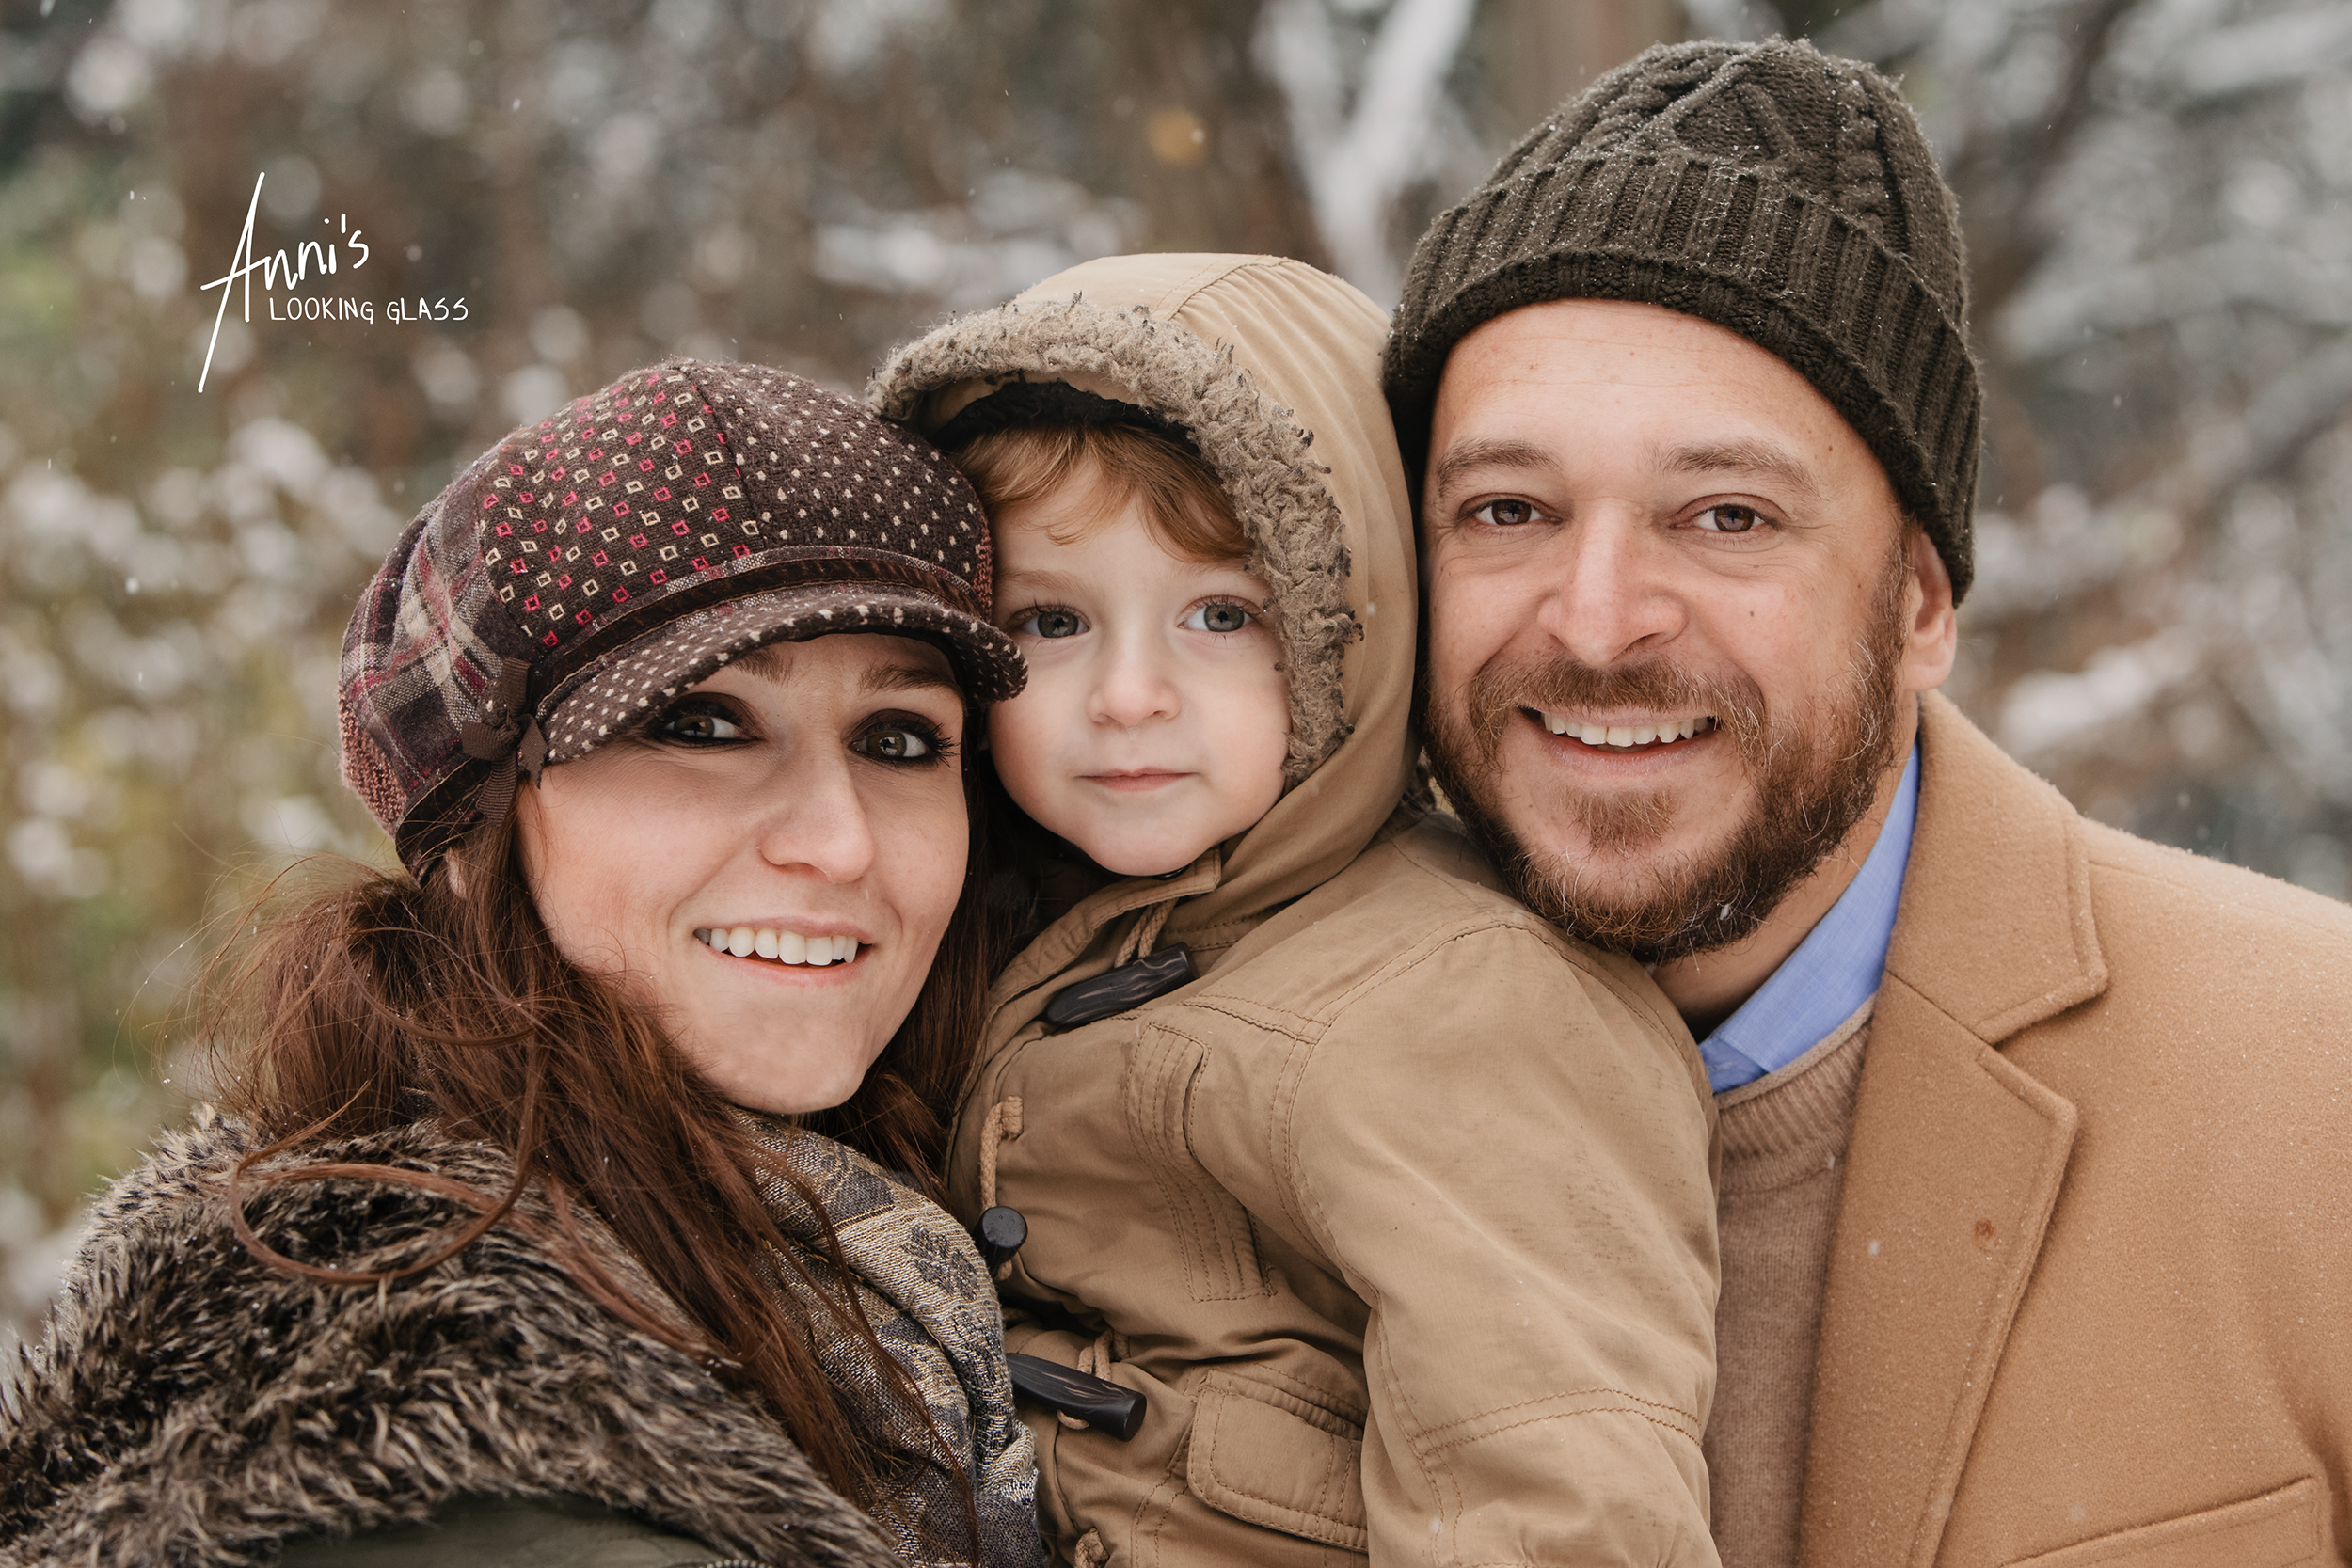 A father and a mother holding her young son smile at the camera wearing winter clothes